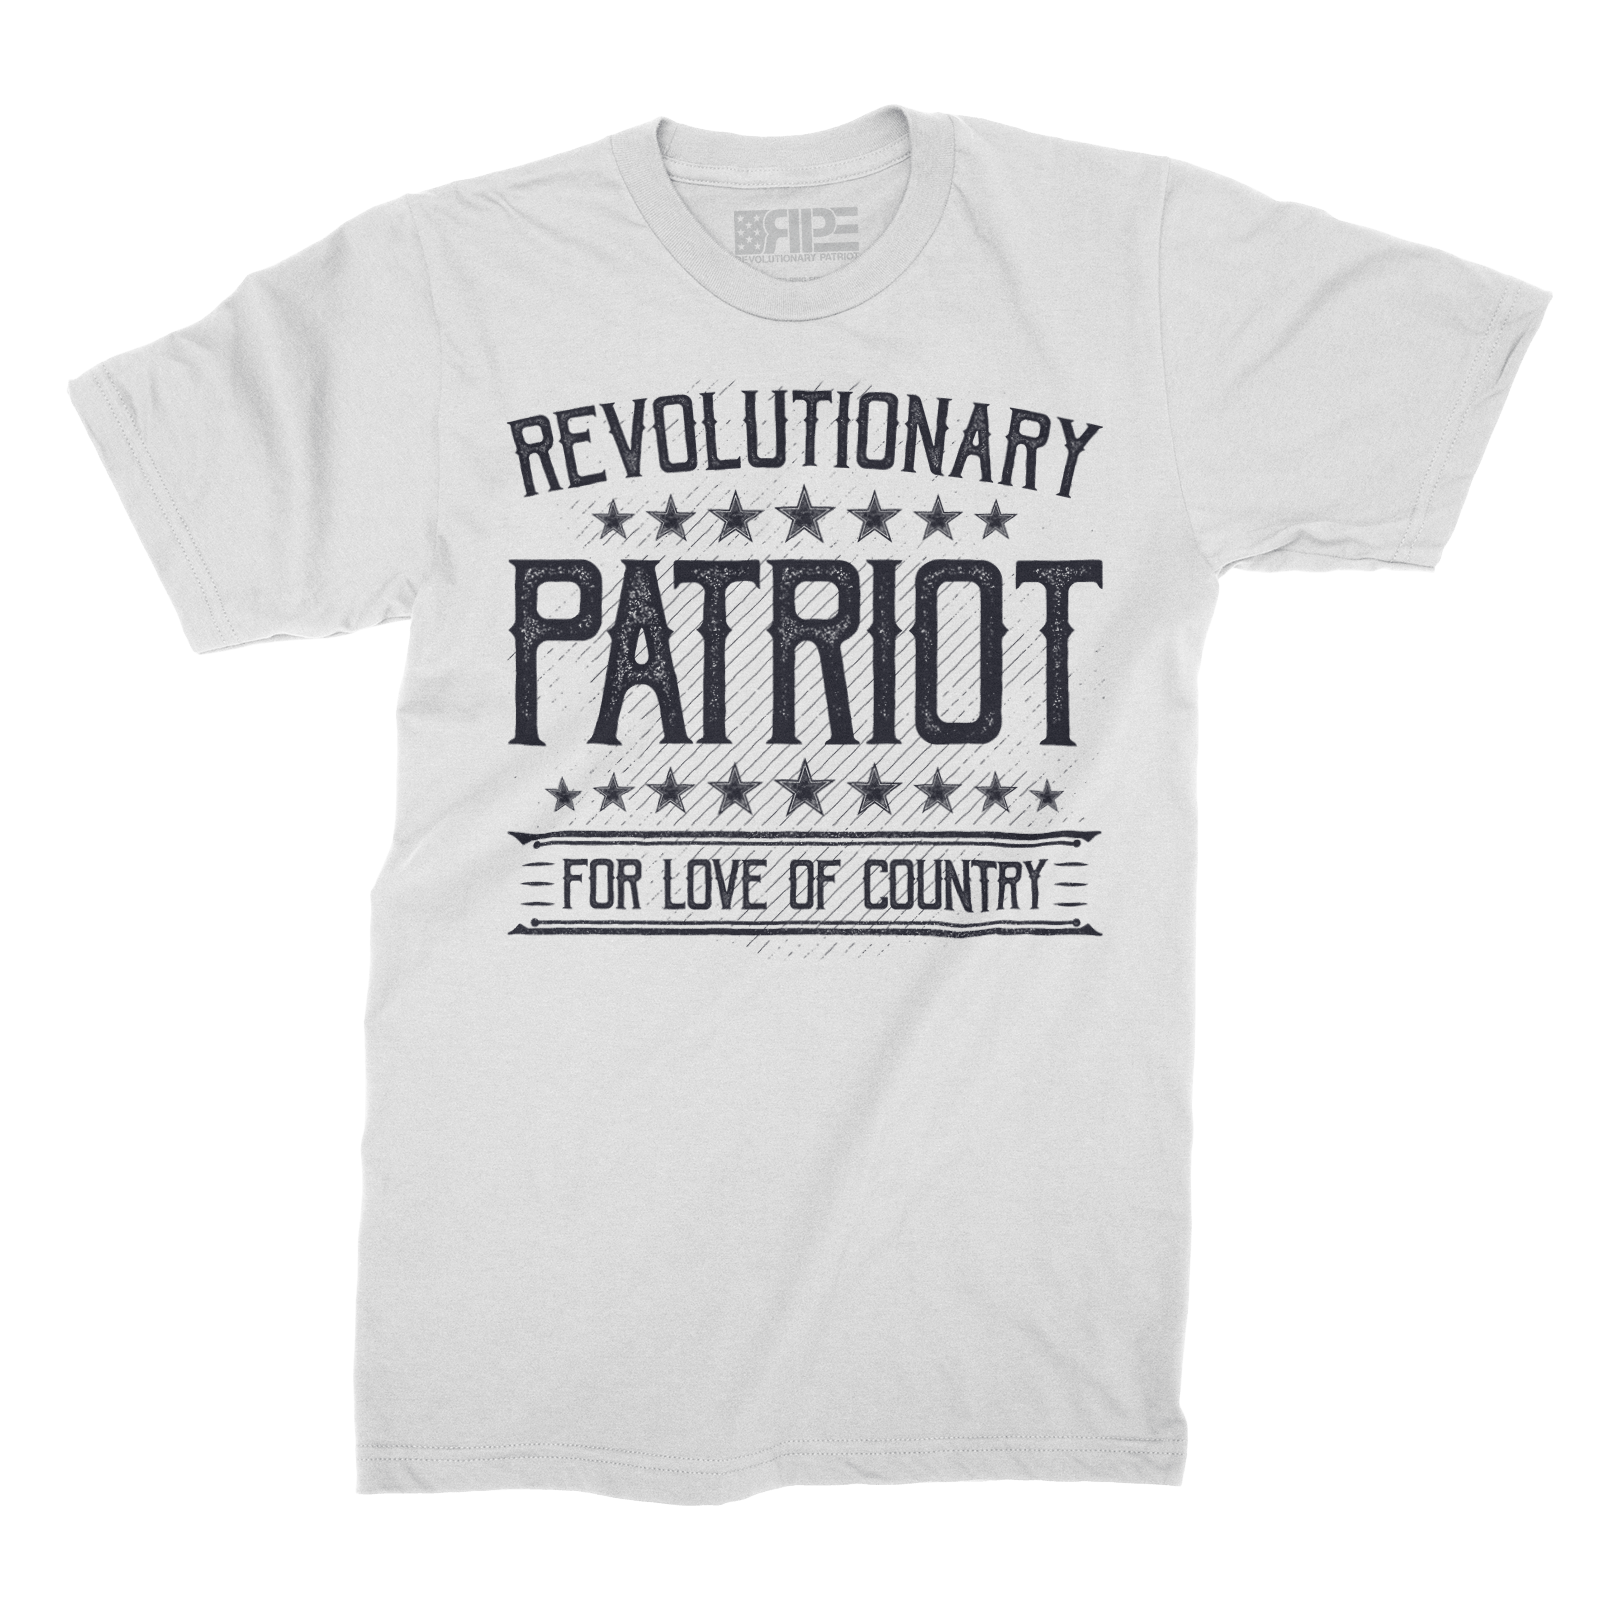 For Love of Country (White) - Revolutionary Patriot